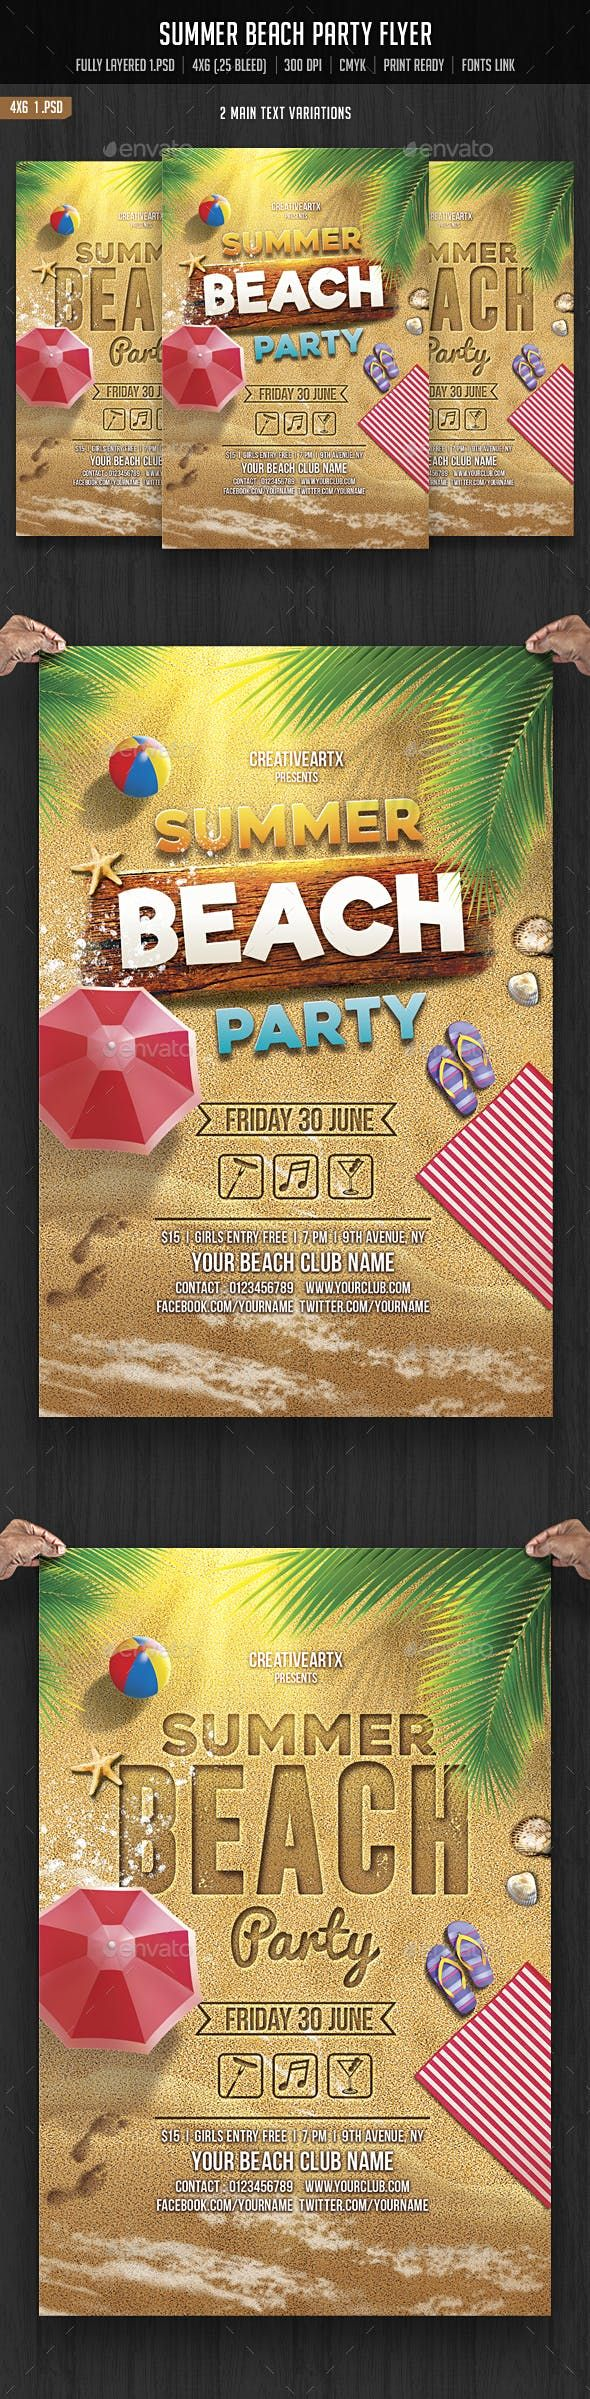 Photo of Summer Beach Party — Photoshop PSD #beach flyer #invitation